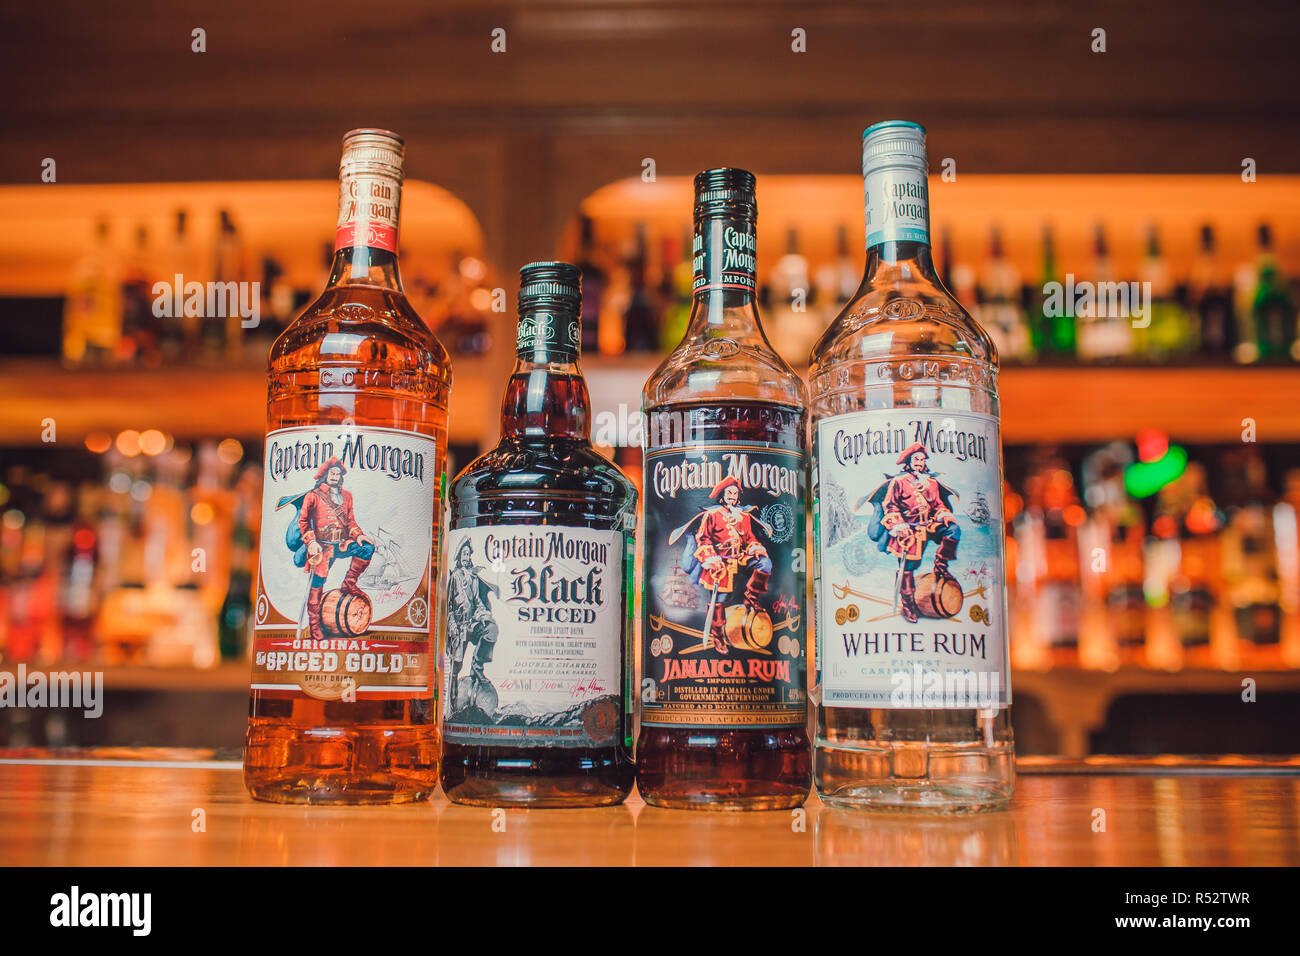 Ufa, Russia, Darling Bar, 20 November, 2018: Originated on US Virgin Islands Captain Morgan is a brand of rum produced by Diageo. - Stock Image